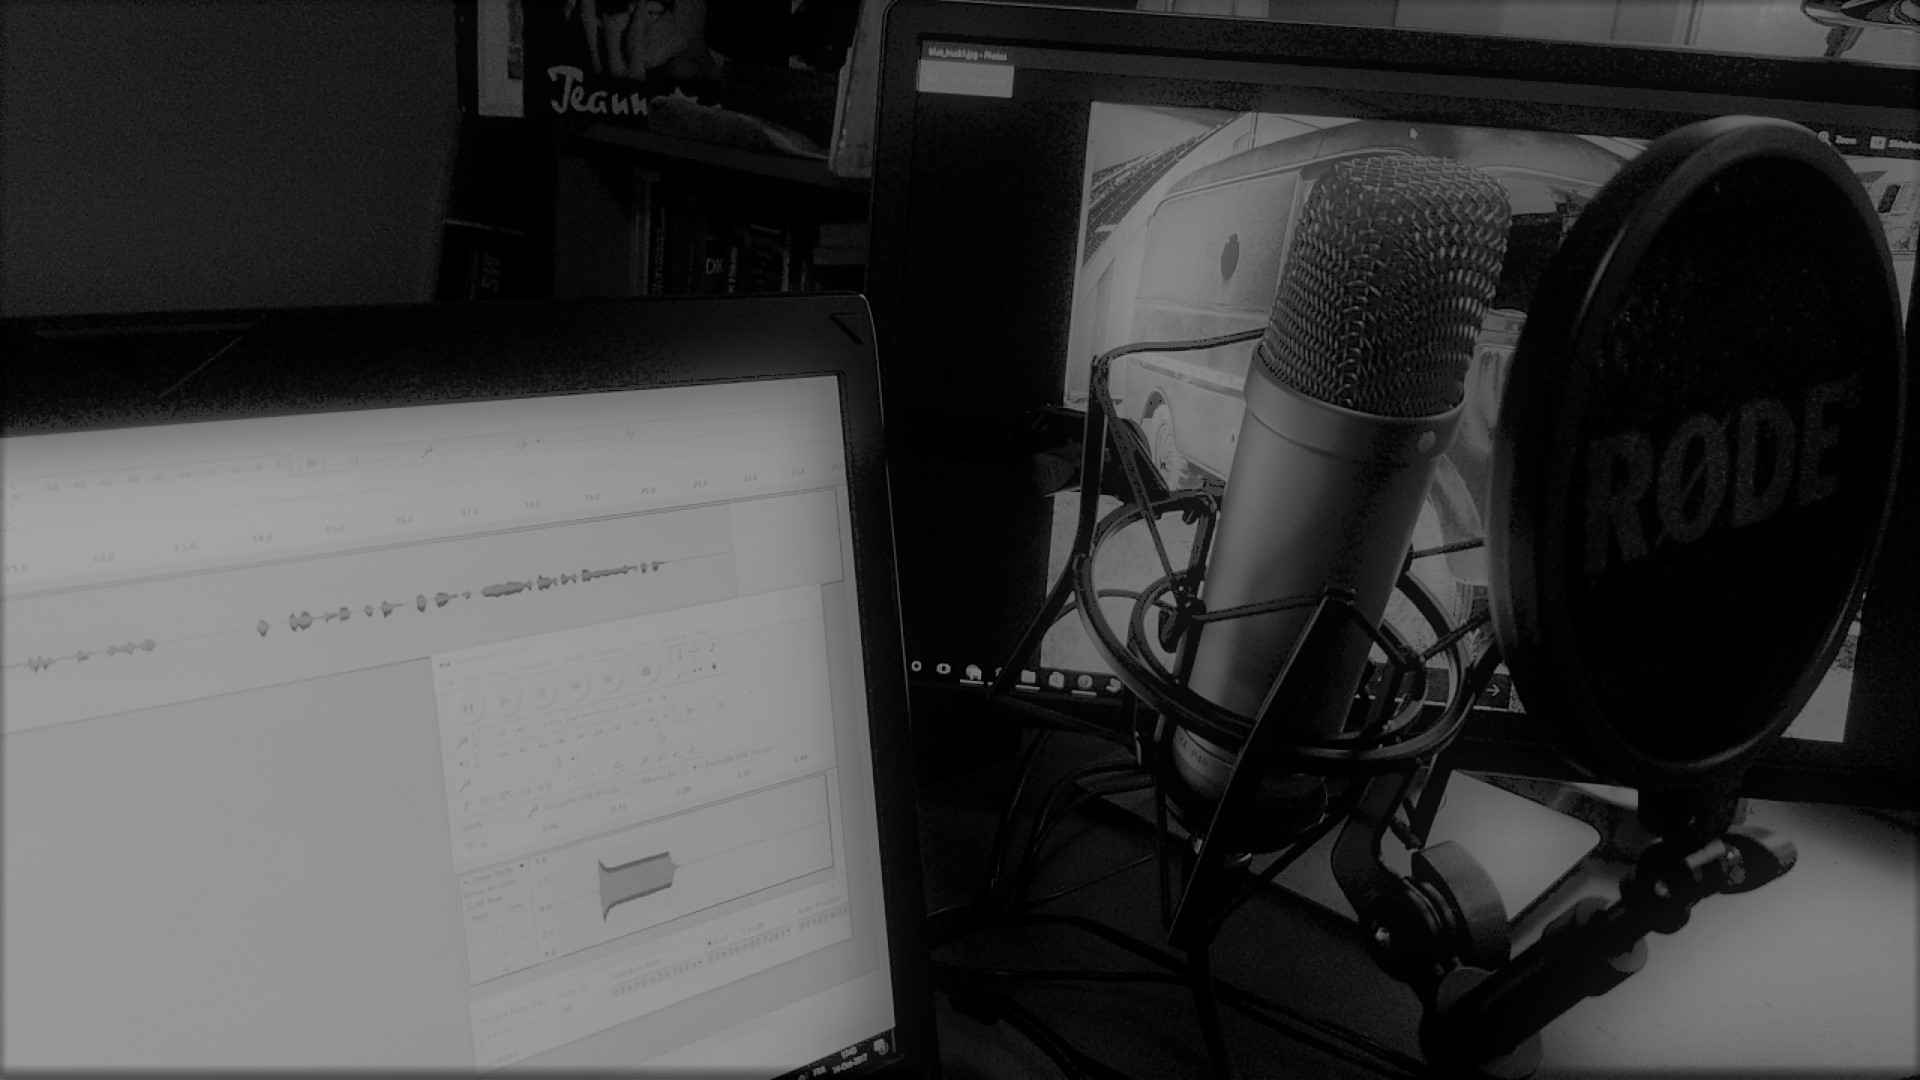 A microphone beside a computer screen showing a sound-editing software.